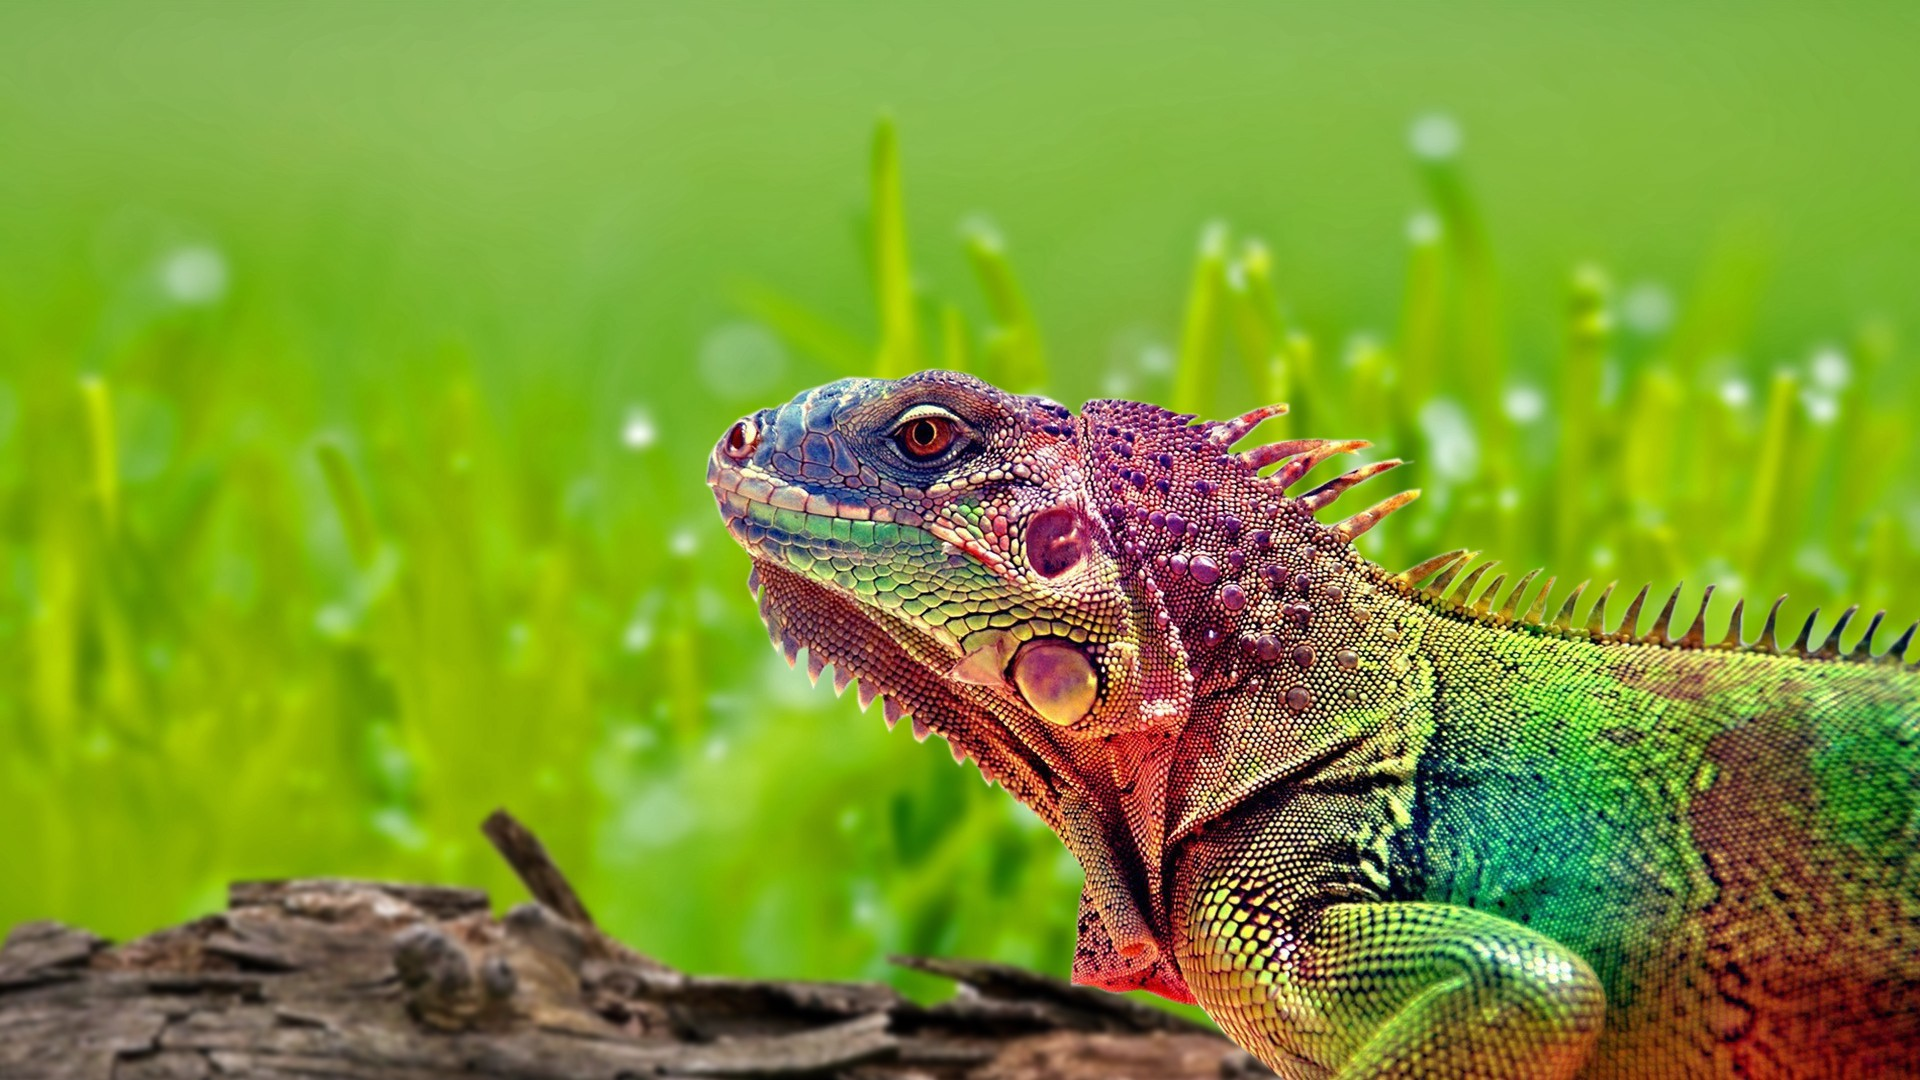 Colorful Lizard Wallpaper